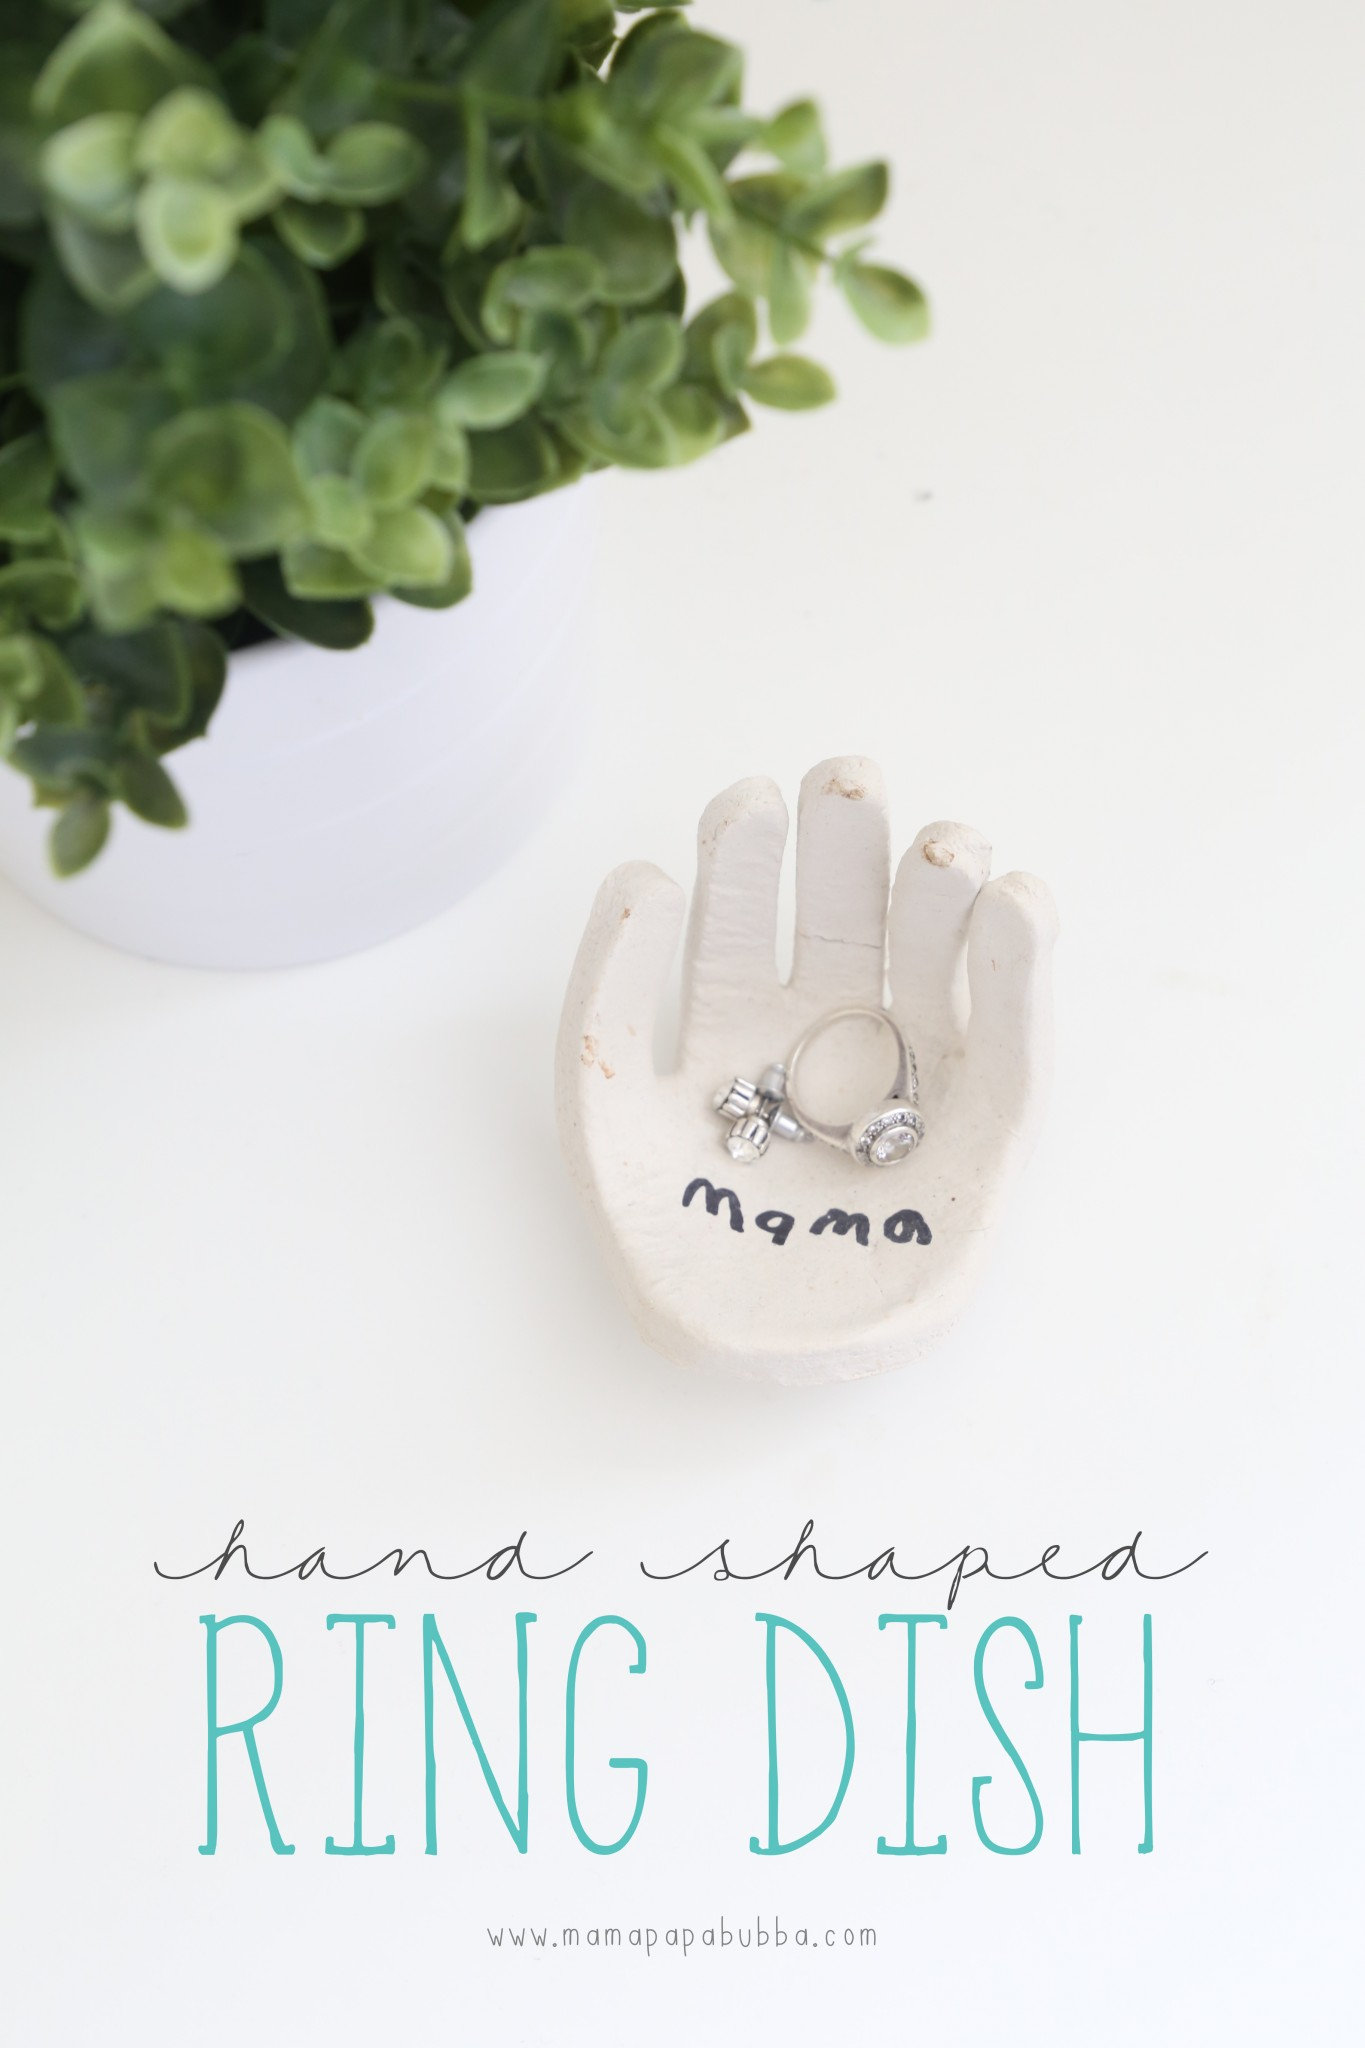 Hand-Shaped Ring Dish | Mama.Papa.Bubba.